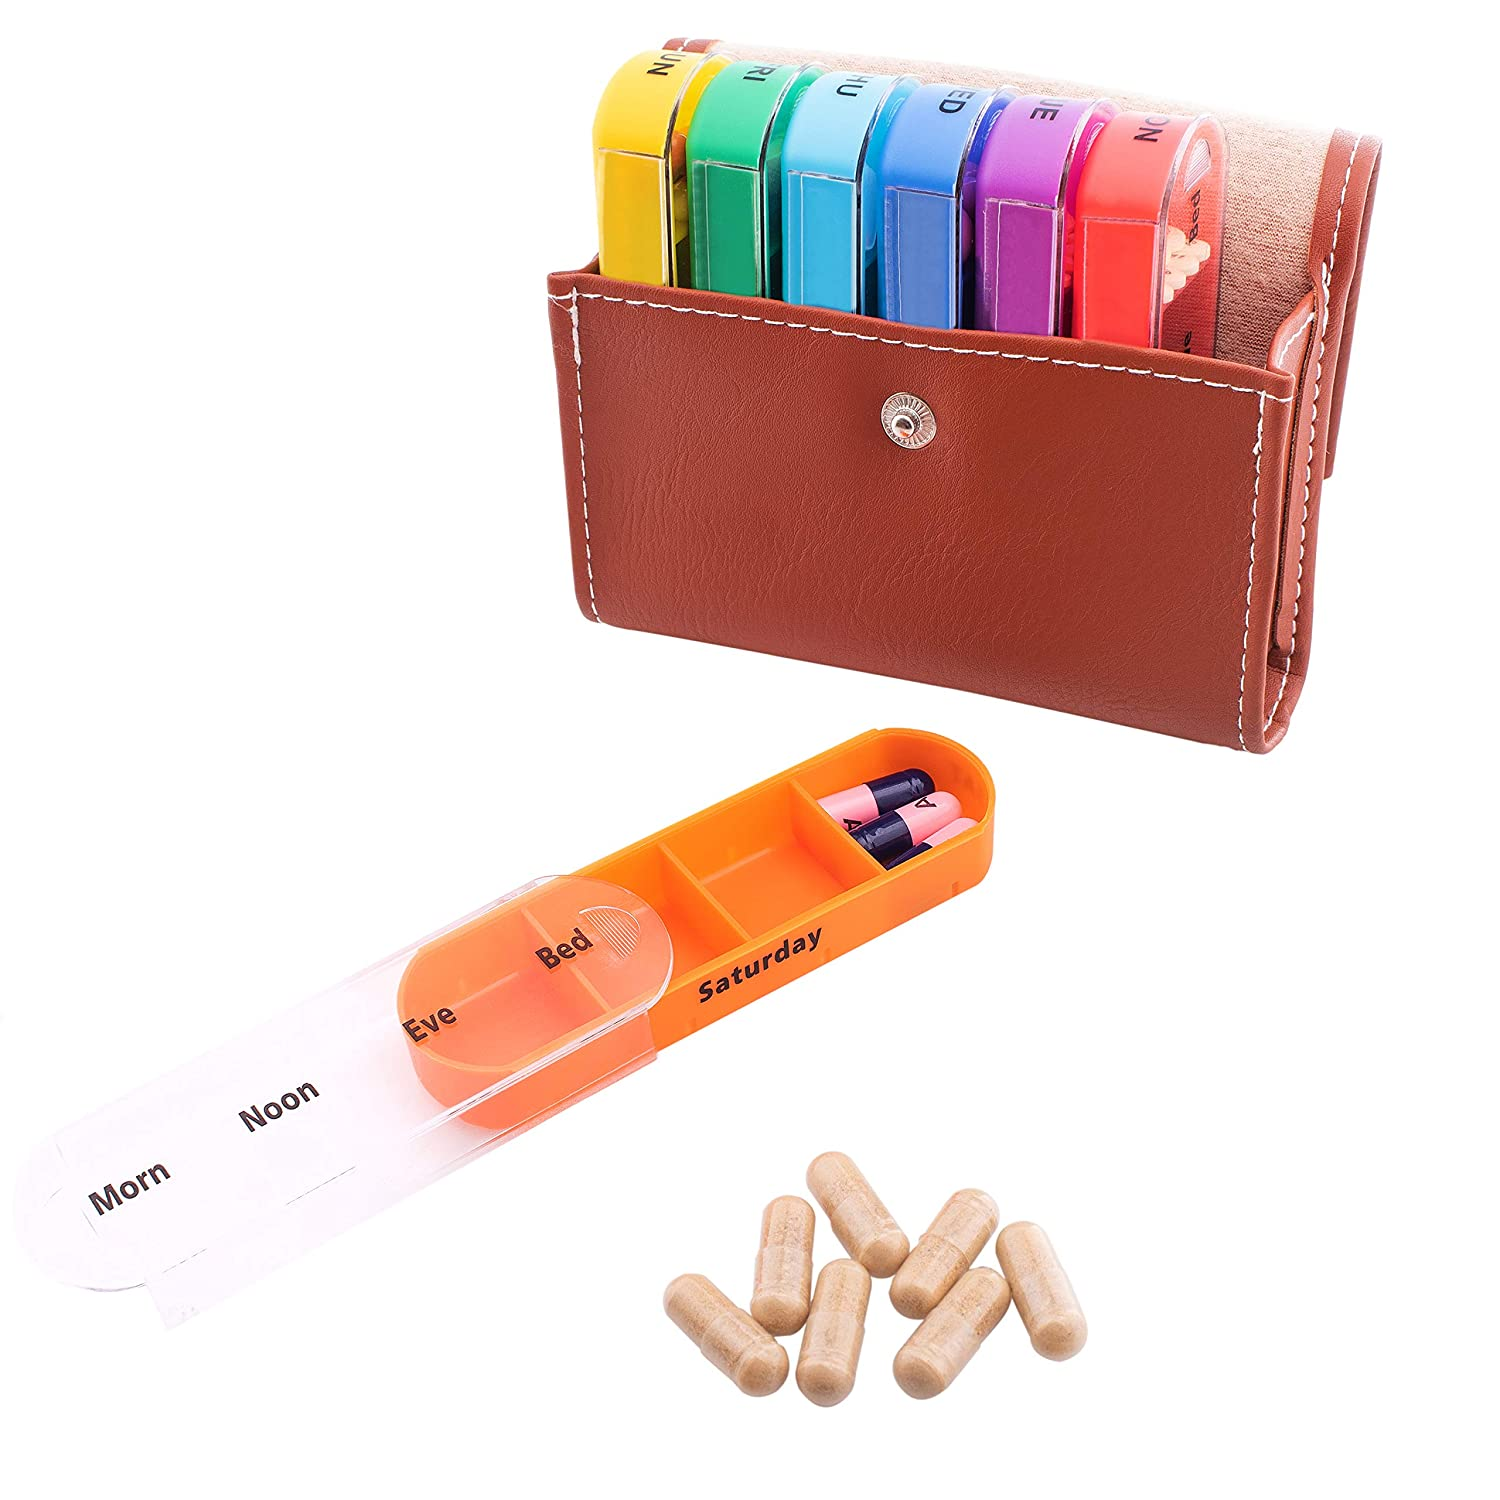 Pill Organizer Box with Weekly Case | Includes Brown Traveling Leather PU  Carrying Pouch |